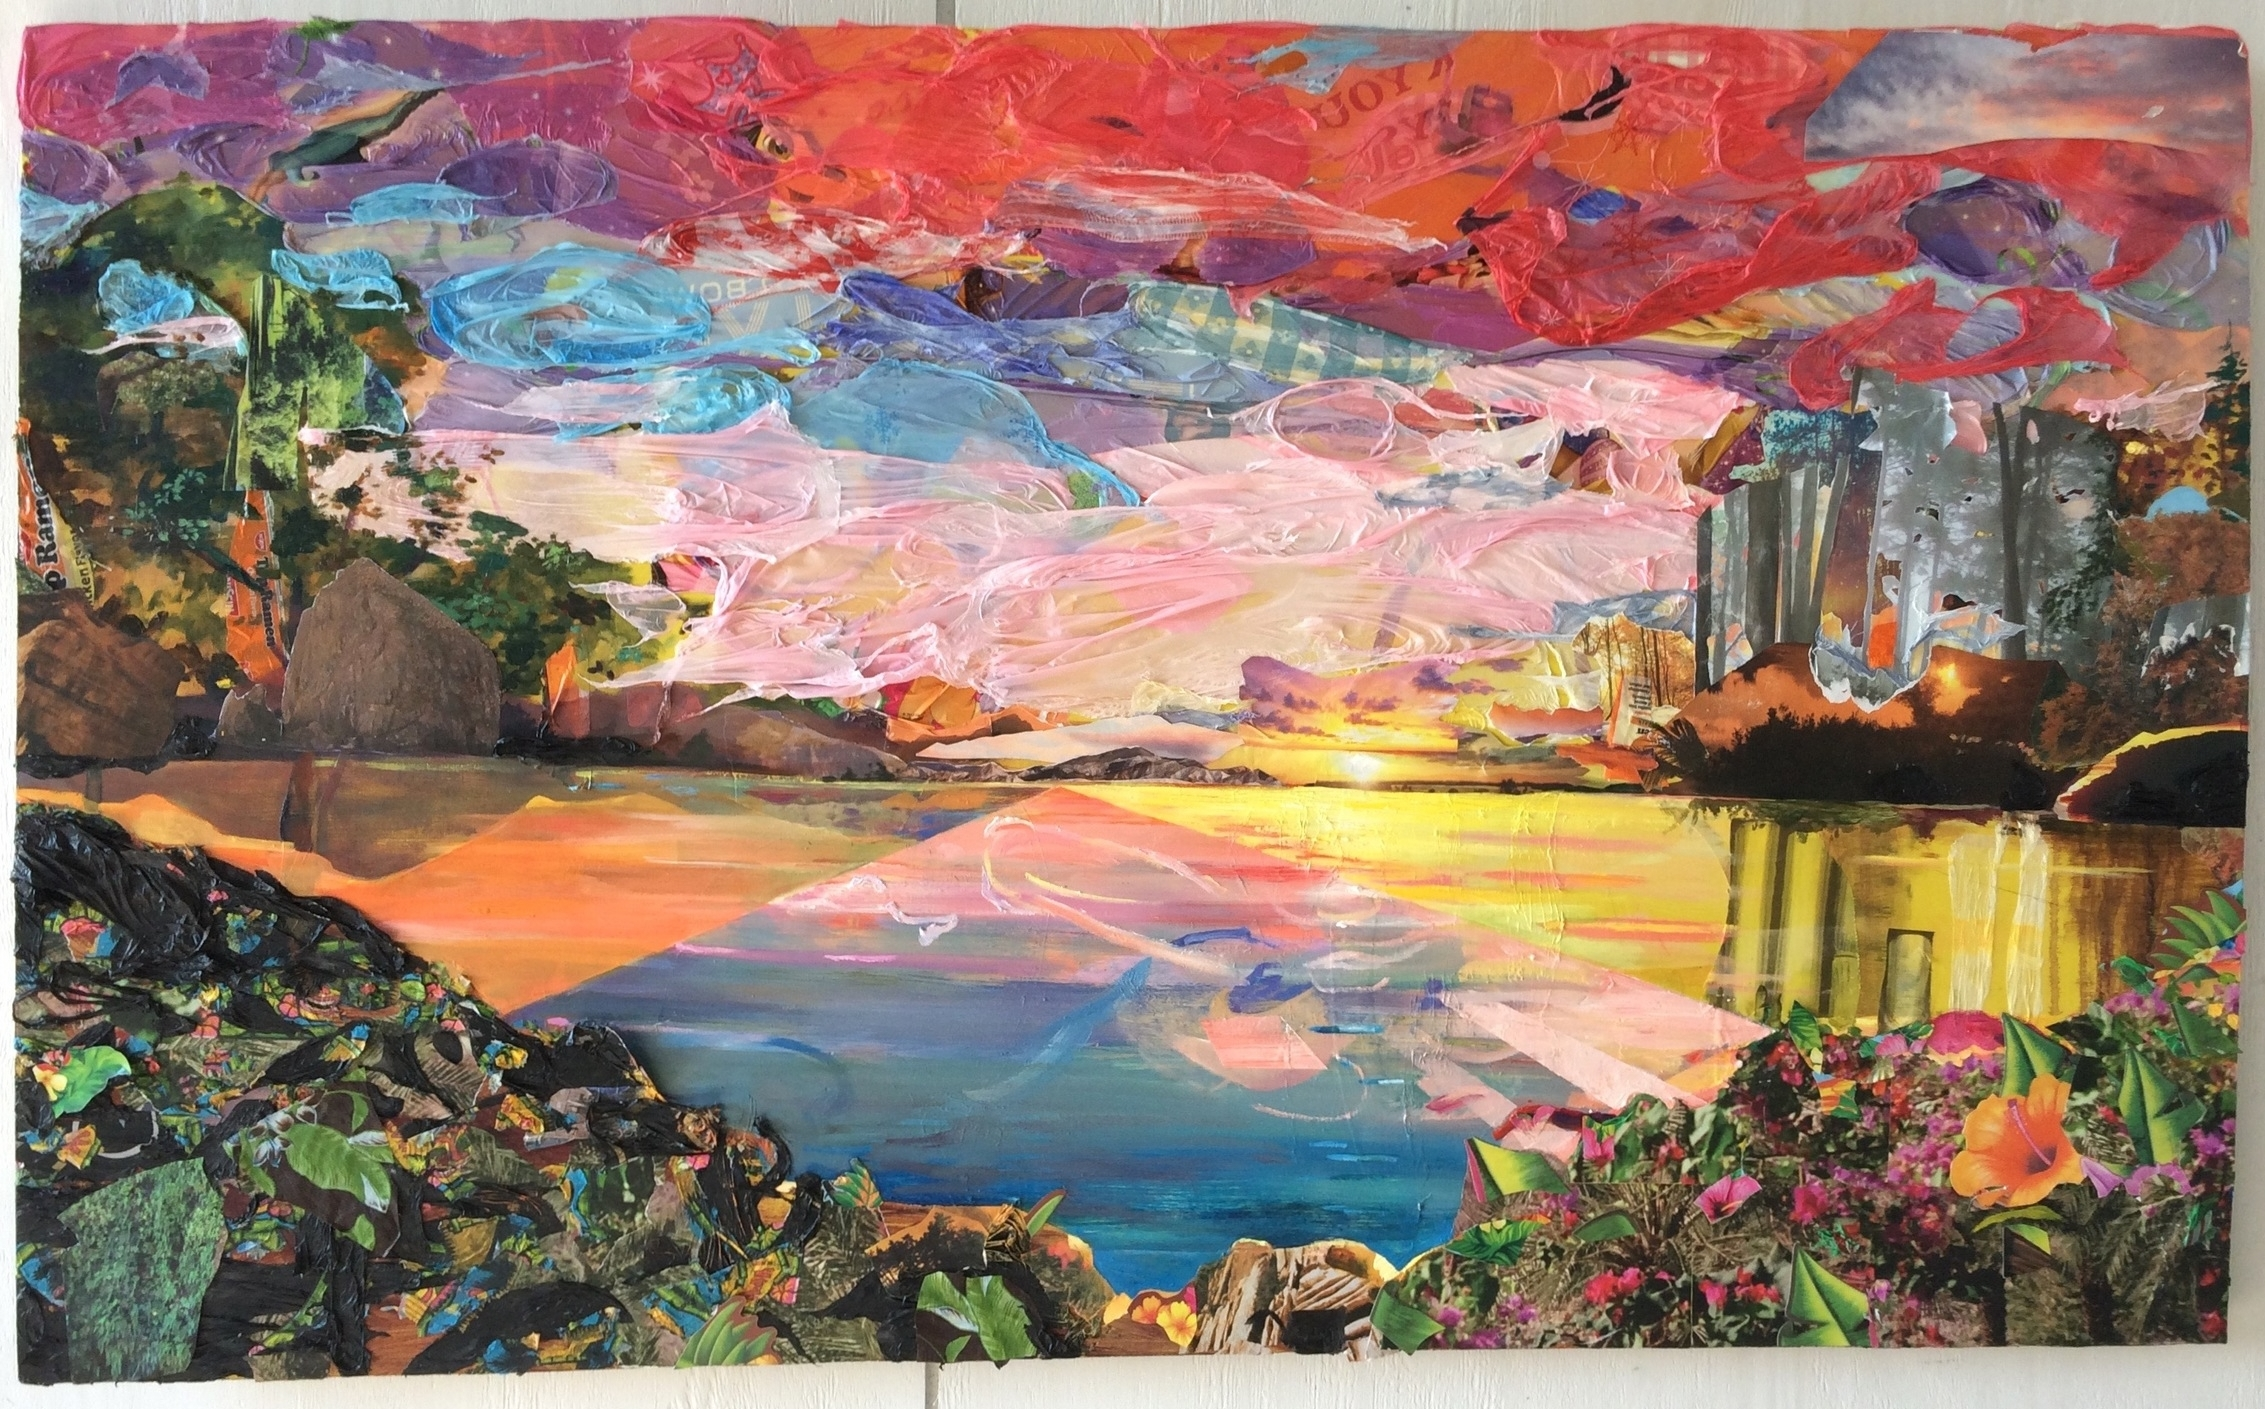 Sunset for Fred Church , 2016, acrylic, oil,plastic tablecloths, nature calendars, Top Ramen packaging, tiki party favors, plastic bag,and photos on board, 36 x 60 x 2 inches